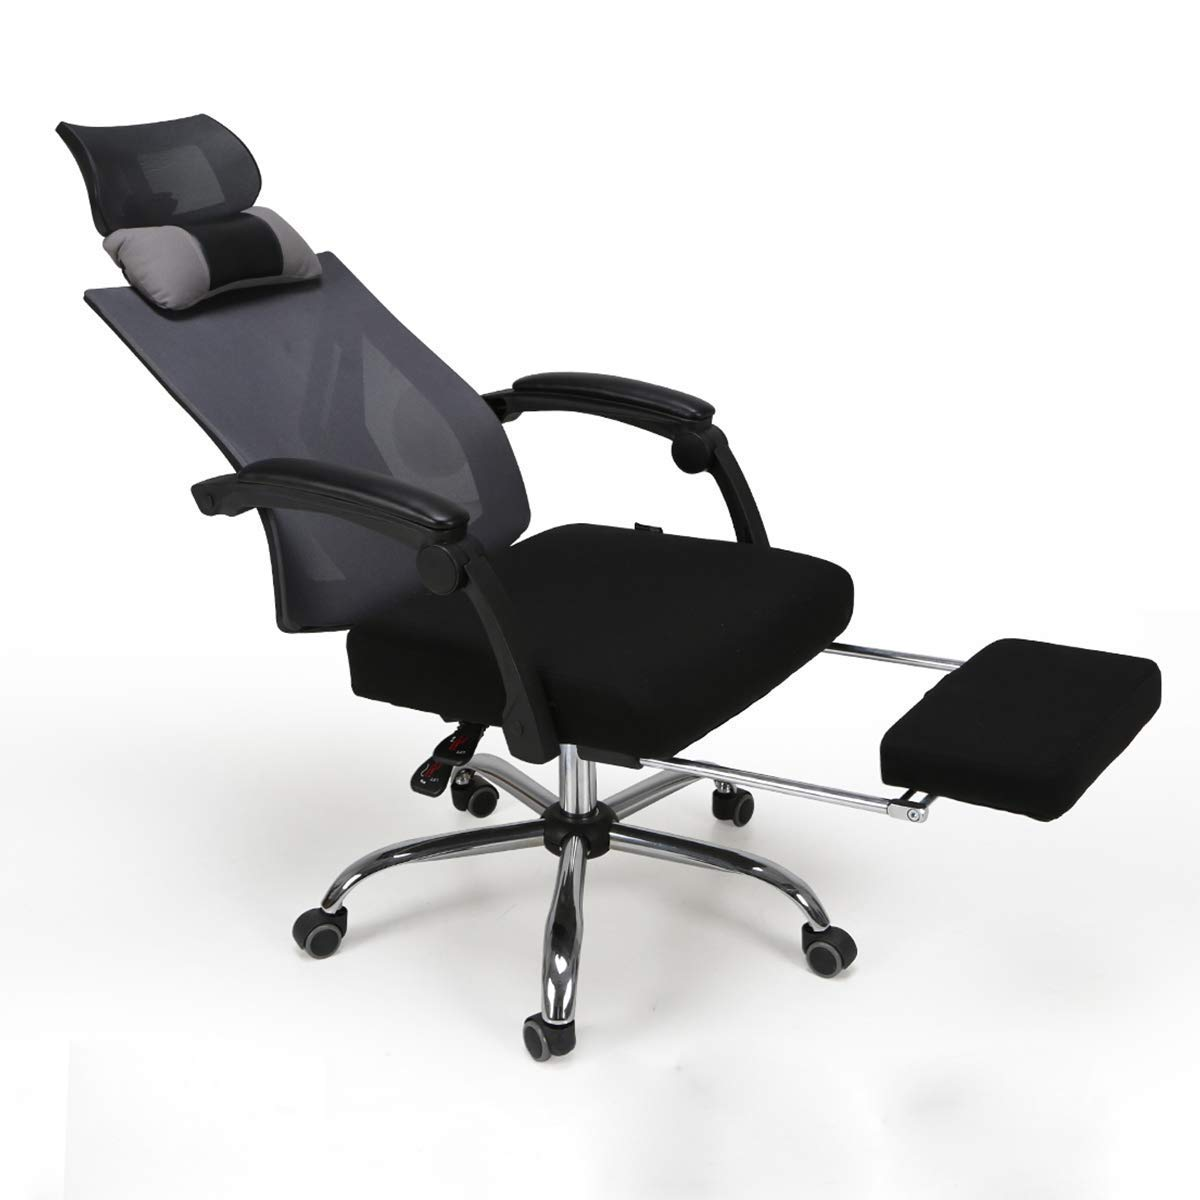 Hbada Ergonomic Office Recliner Chair - High-Back Desk Chair Racing Style with Lumbar Support - Height Adjustable Seat, Headrest- Breathable Mesh Back - Soft Foam Seat Cushion with Footrest, Black by Hbada (Image #2)